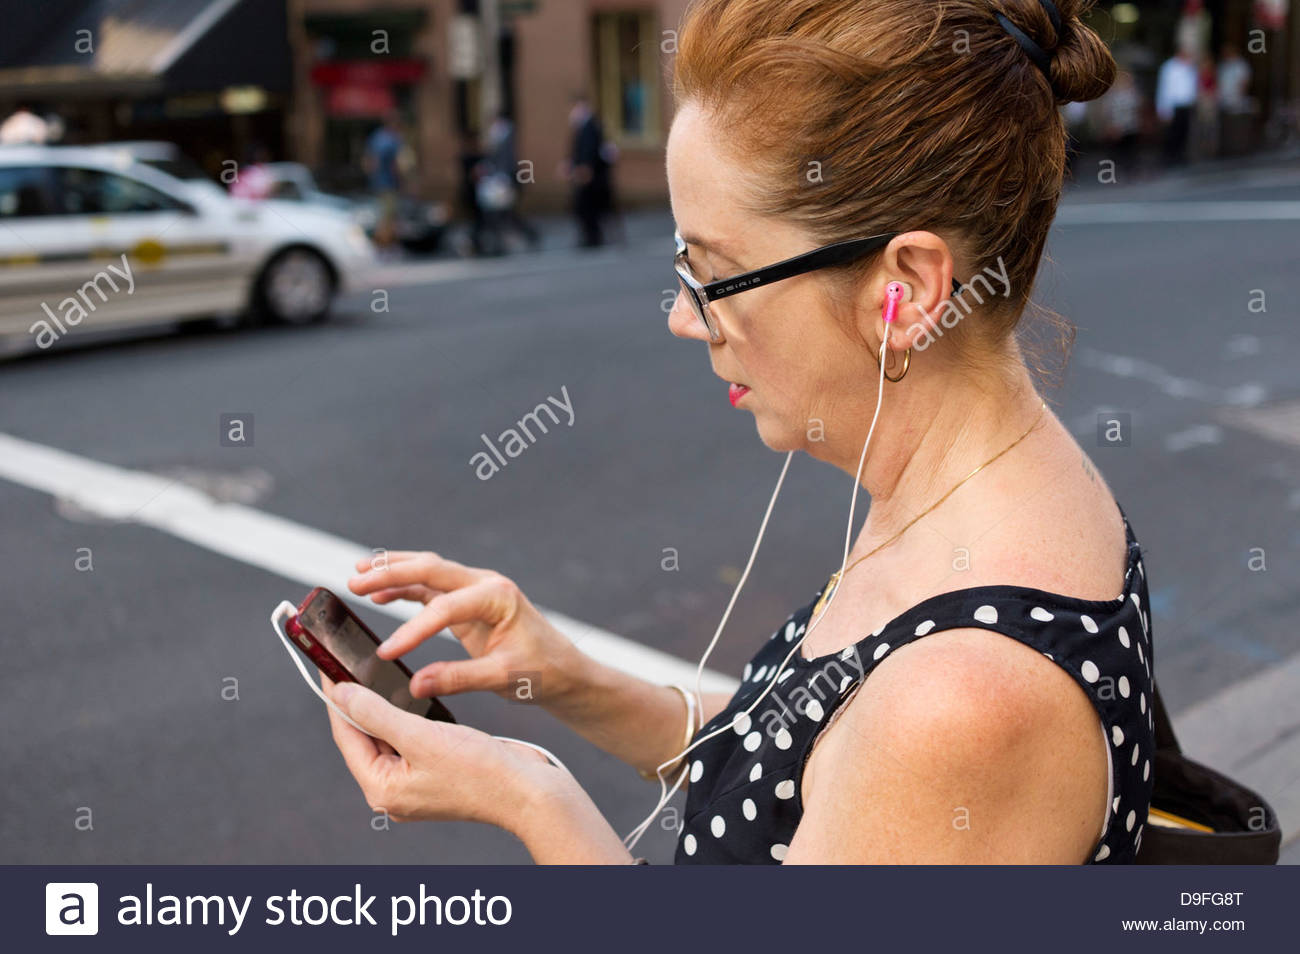 Woman with smart-phone makes 'pinch' gesture on touch-screen, while listening on ear-phones; Sydney, Australia - Stock Image